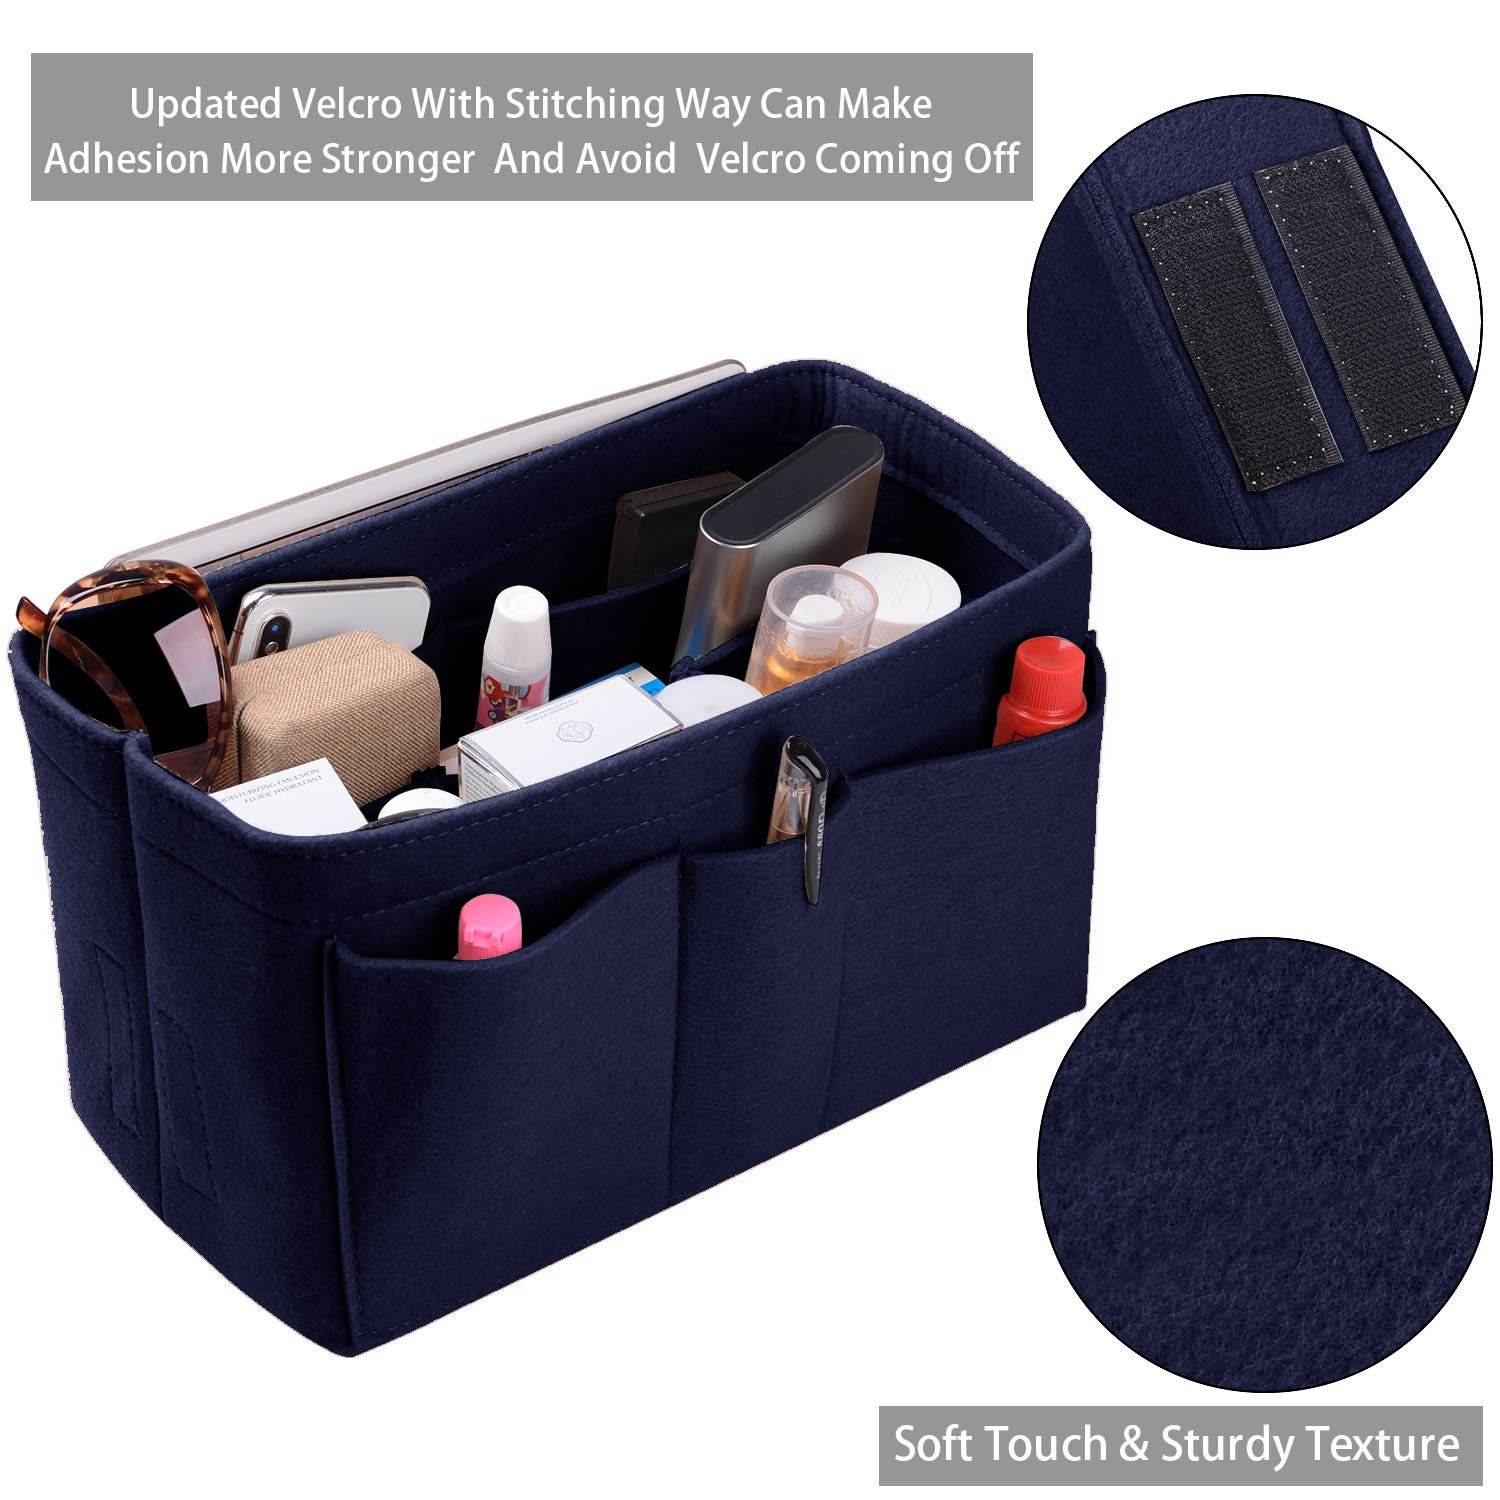 Purse Organizer Insert, Felt(3MM) Fabric Bag Organizer for LV Neverfull, LV Speedy, Purse Handbag Tote Bag, 3 Sizes, 8 Colors (large, Purplish Blue)